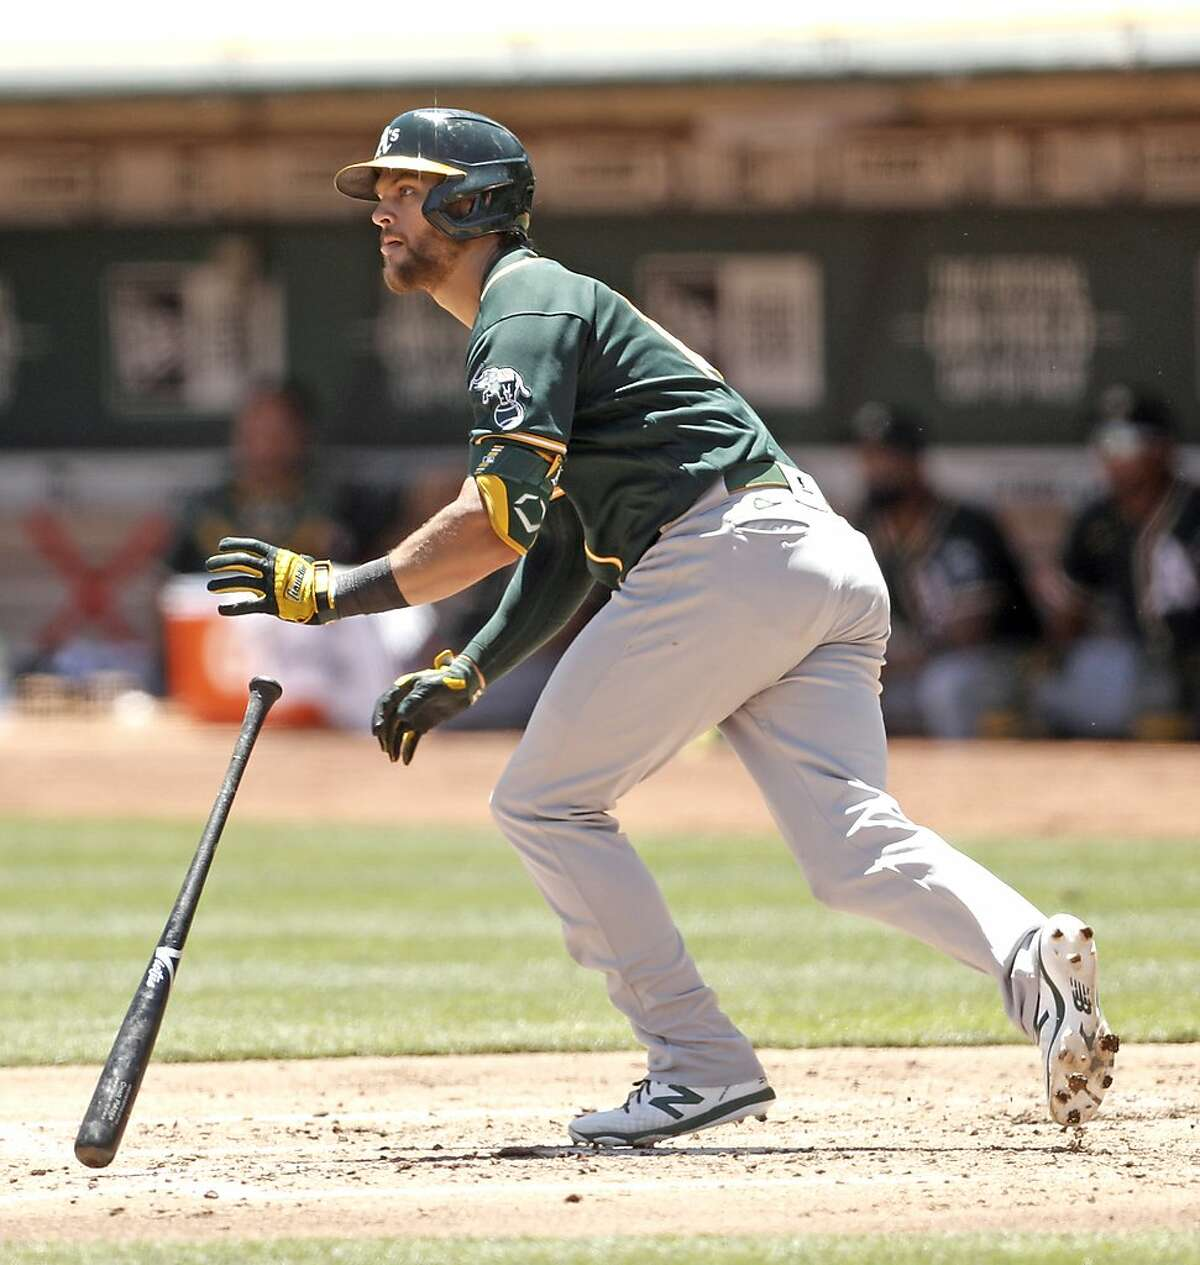 Oakland Athletics' Chad Pinder singles during simulated game at Oakland Coliseum in Oakland, Calif., on Sunday, July 12, 2020.